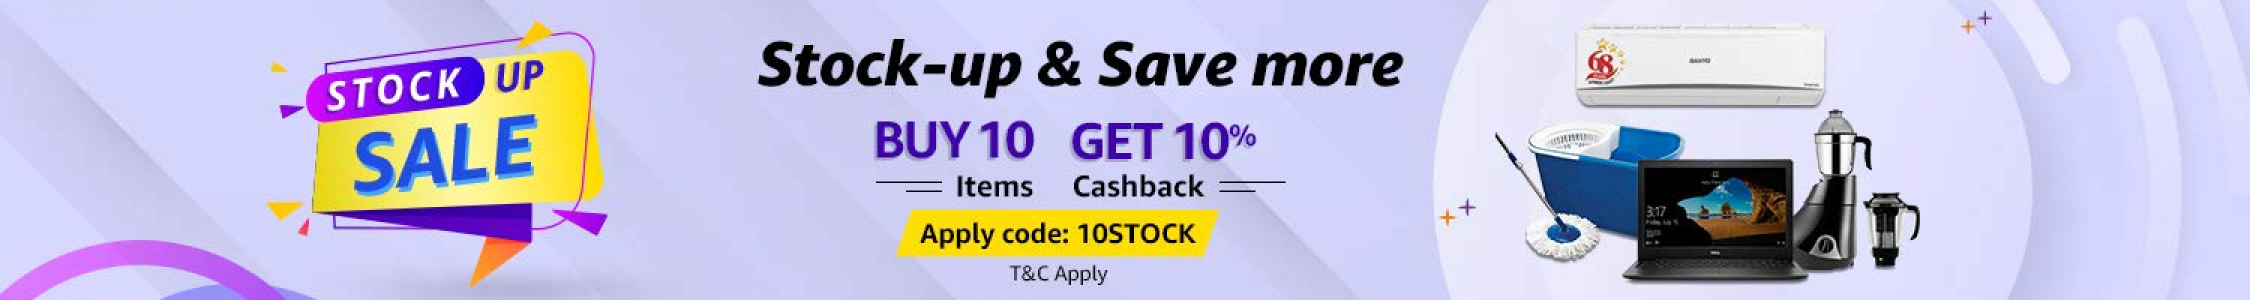 Amazon Stock Up Sale: Stock up & Save More Buy 10 Items & Get Extra 10% Cashback (Max. 500)